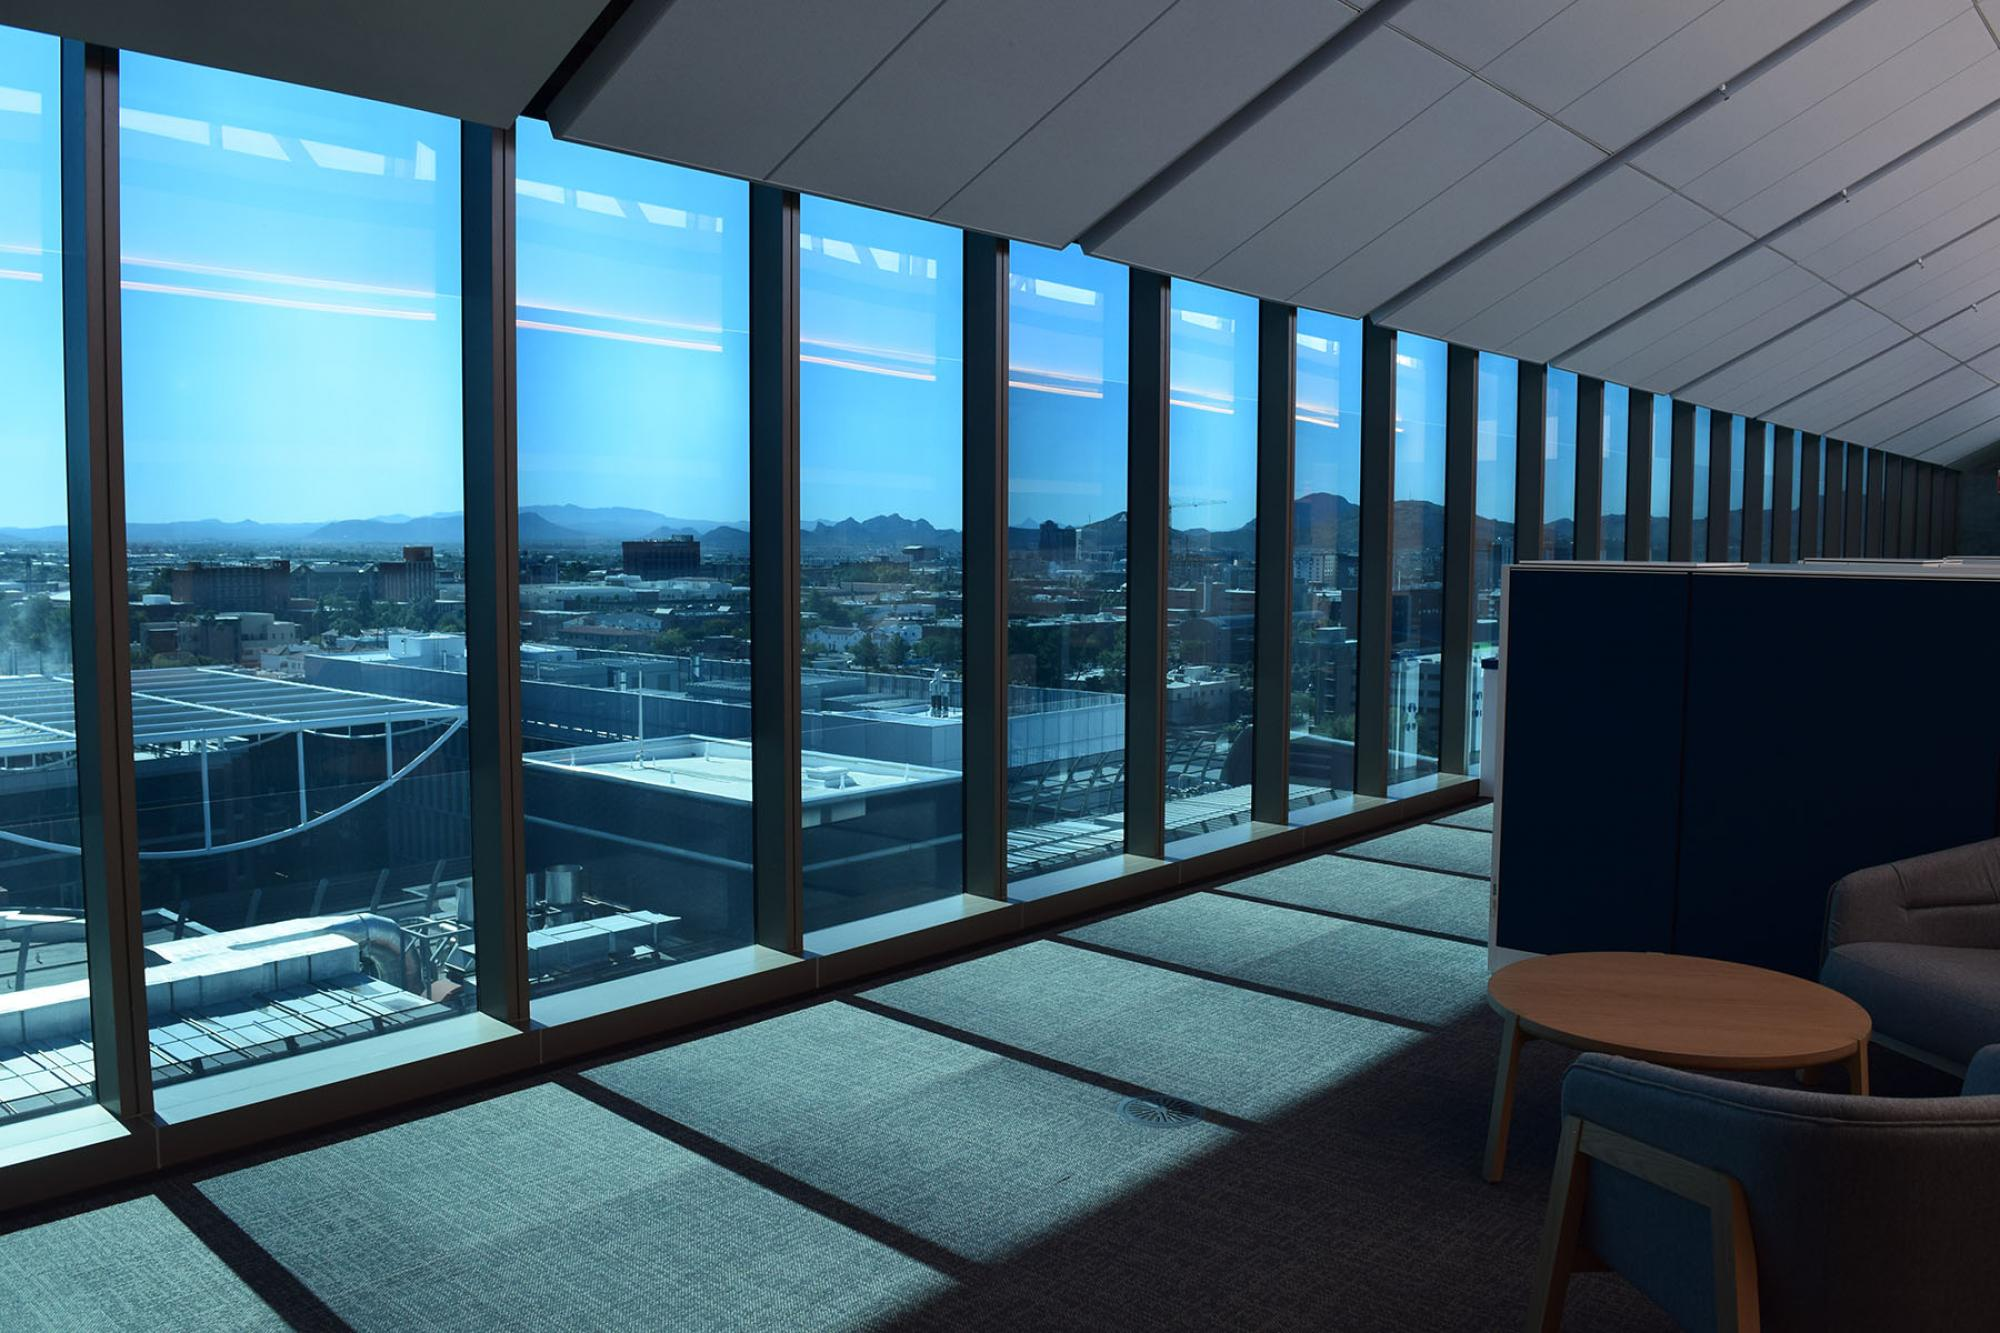 The south-facing windows on the ninth floor of the Health Sciences Innovation Building feature floor-to-ceiling glass windows by SageGlass, which are similar to photochromic glasses that automatically darken when exposed to sunlight.